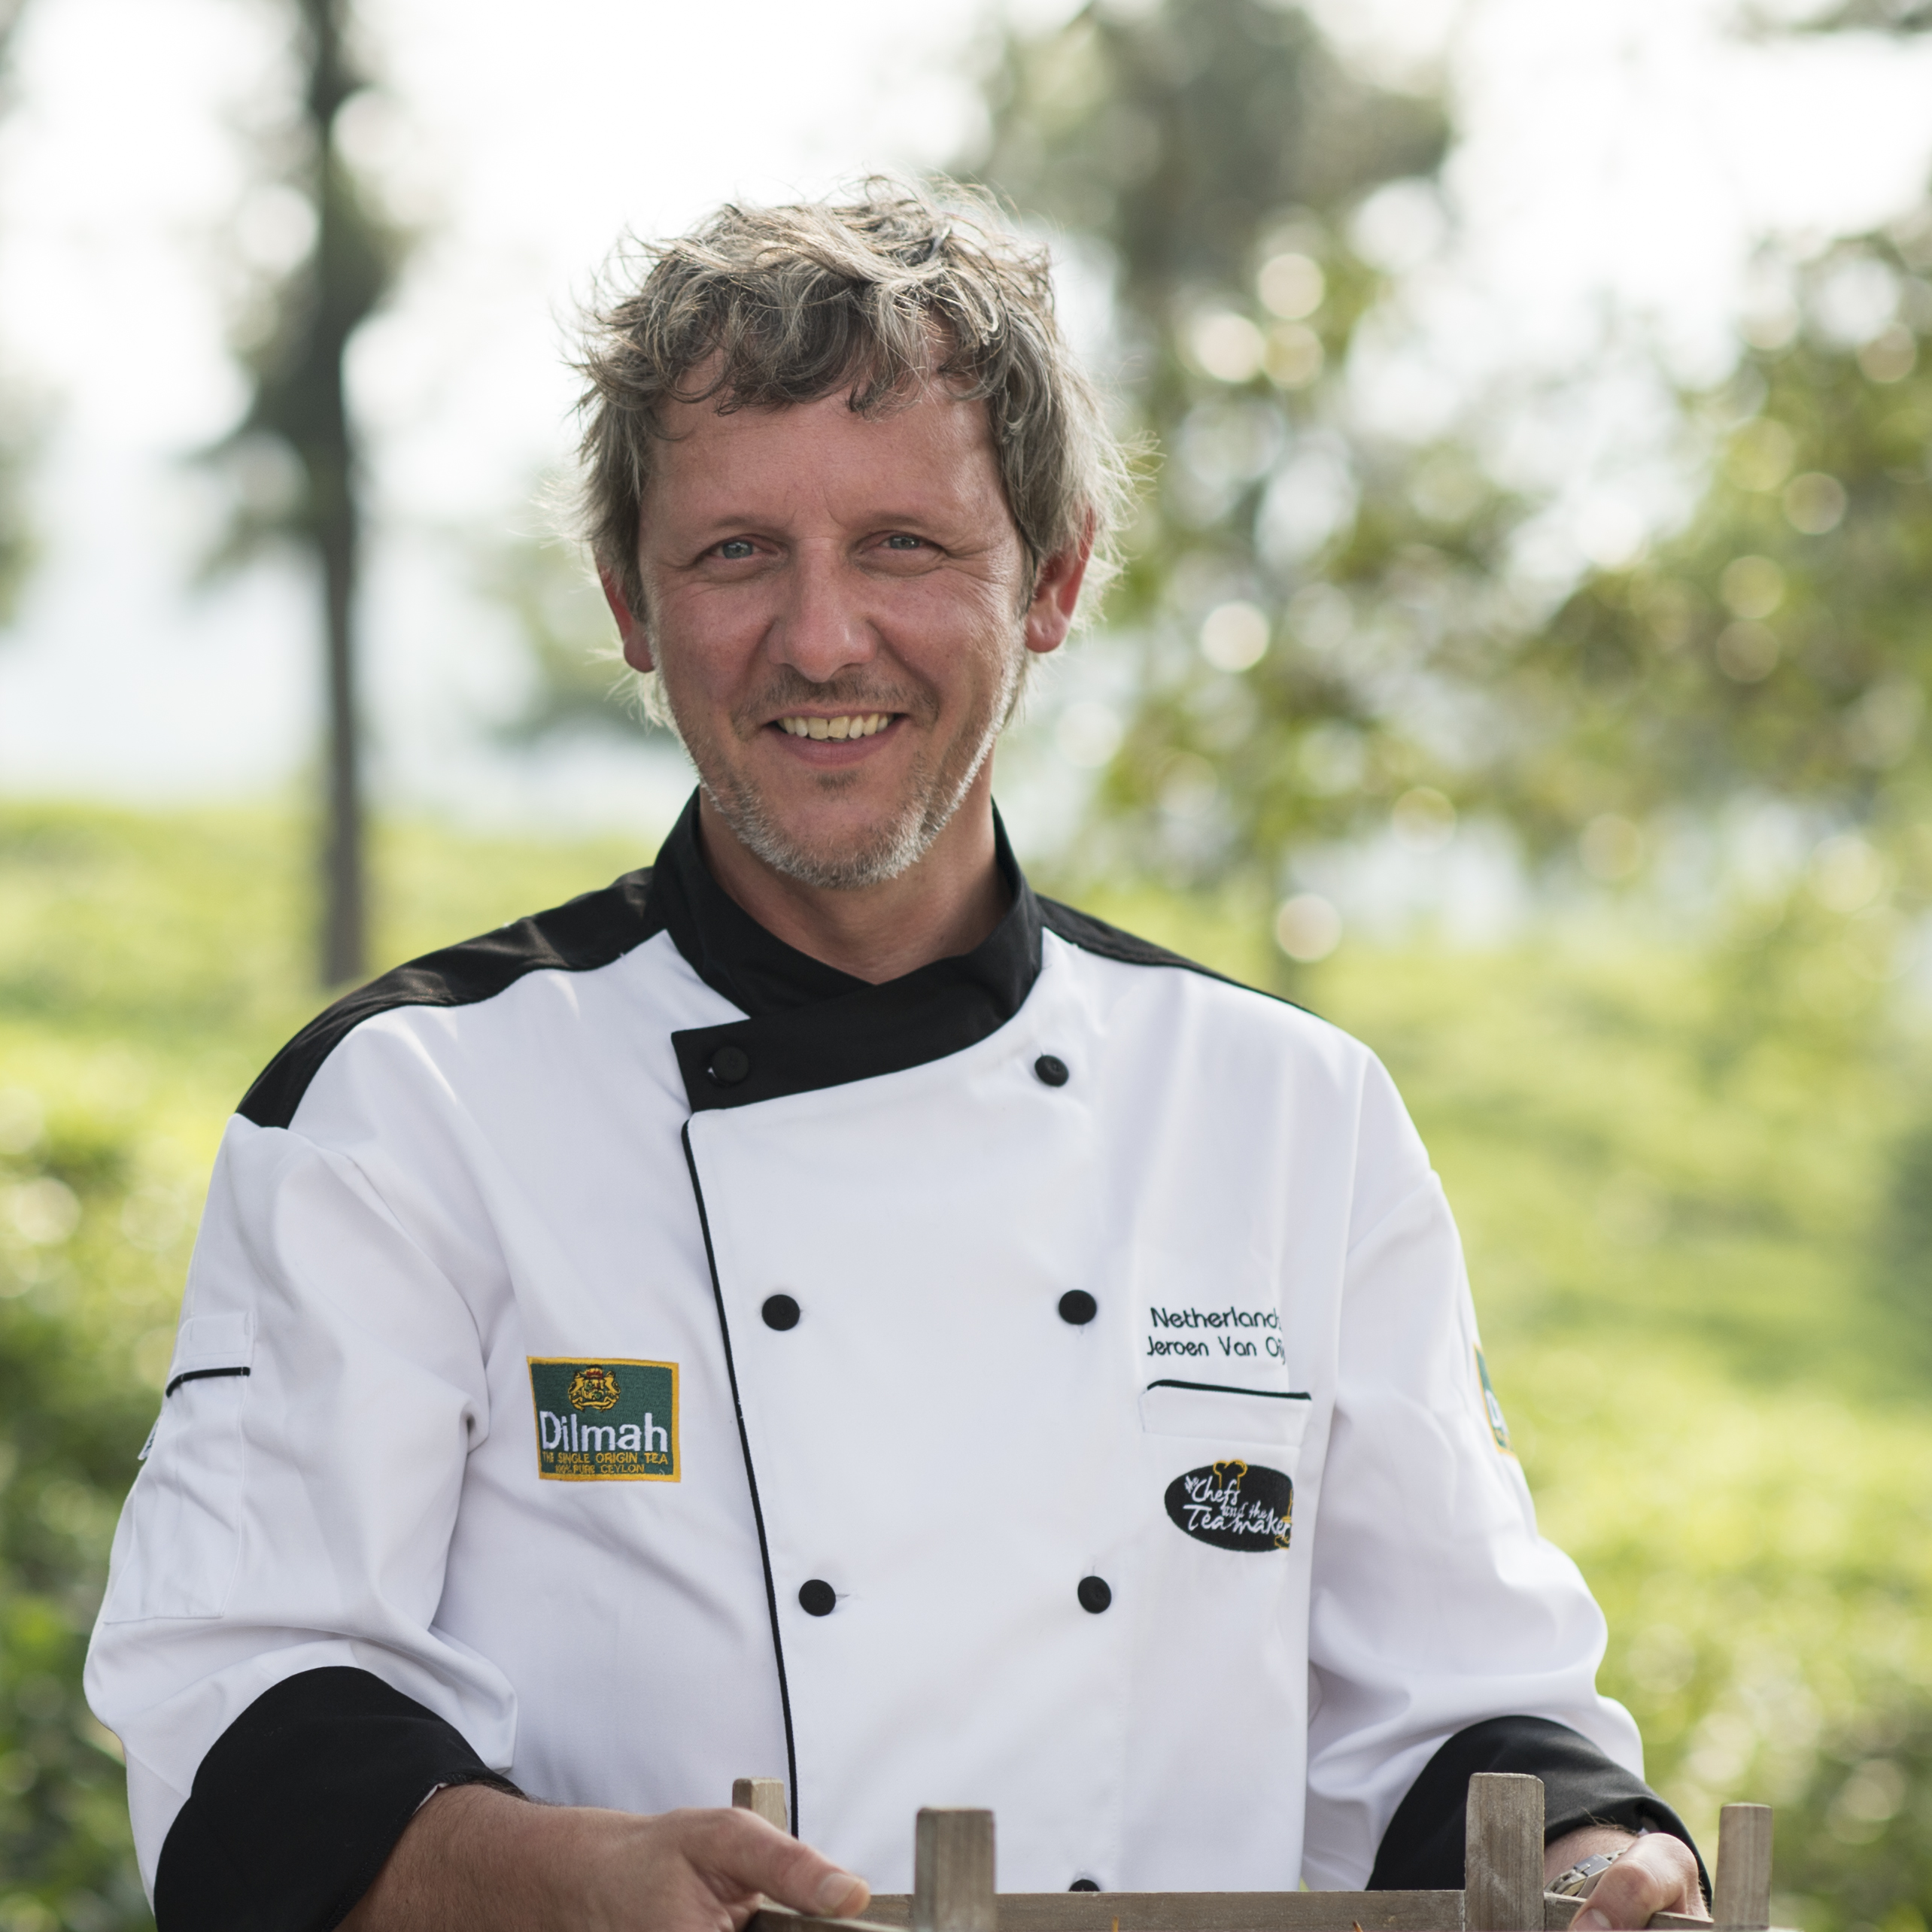 Jeroen Van Oijen - Chef and the Tea Maker